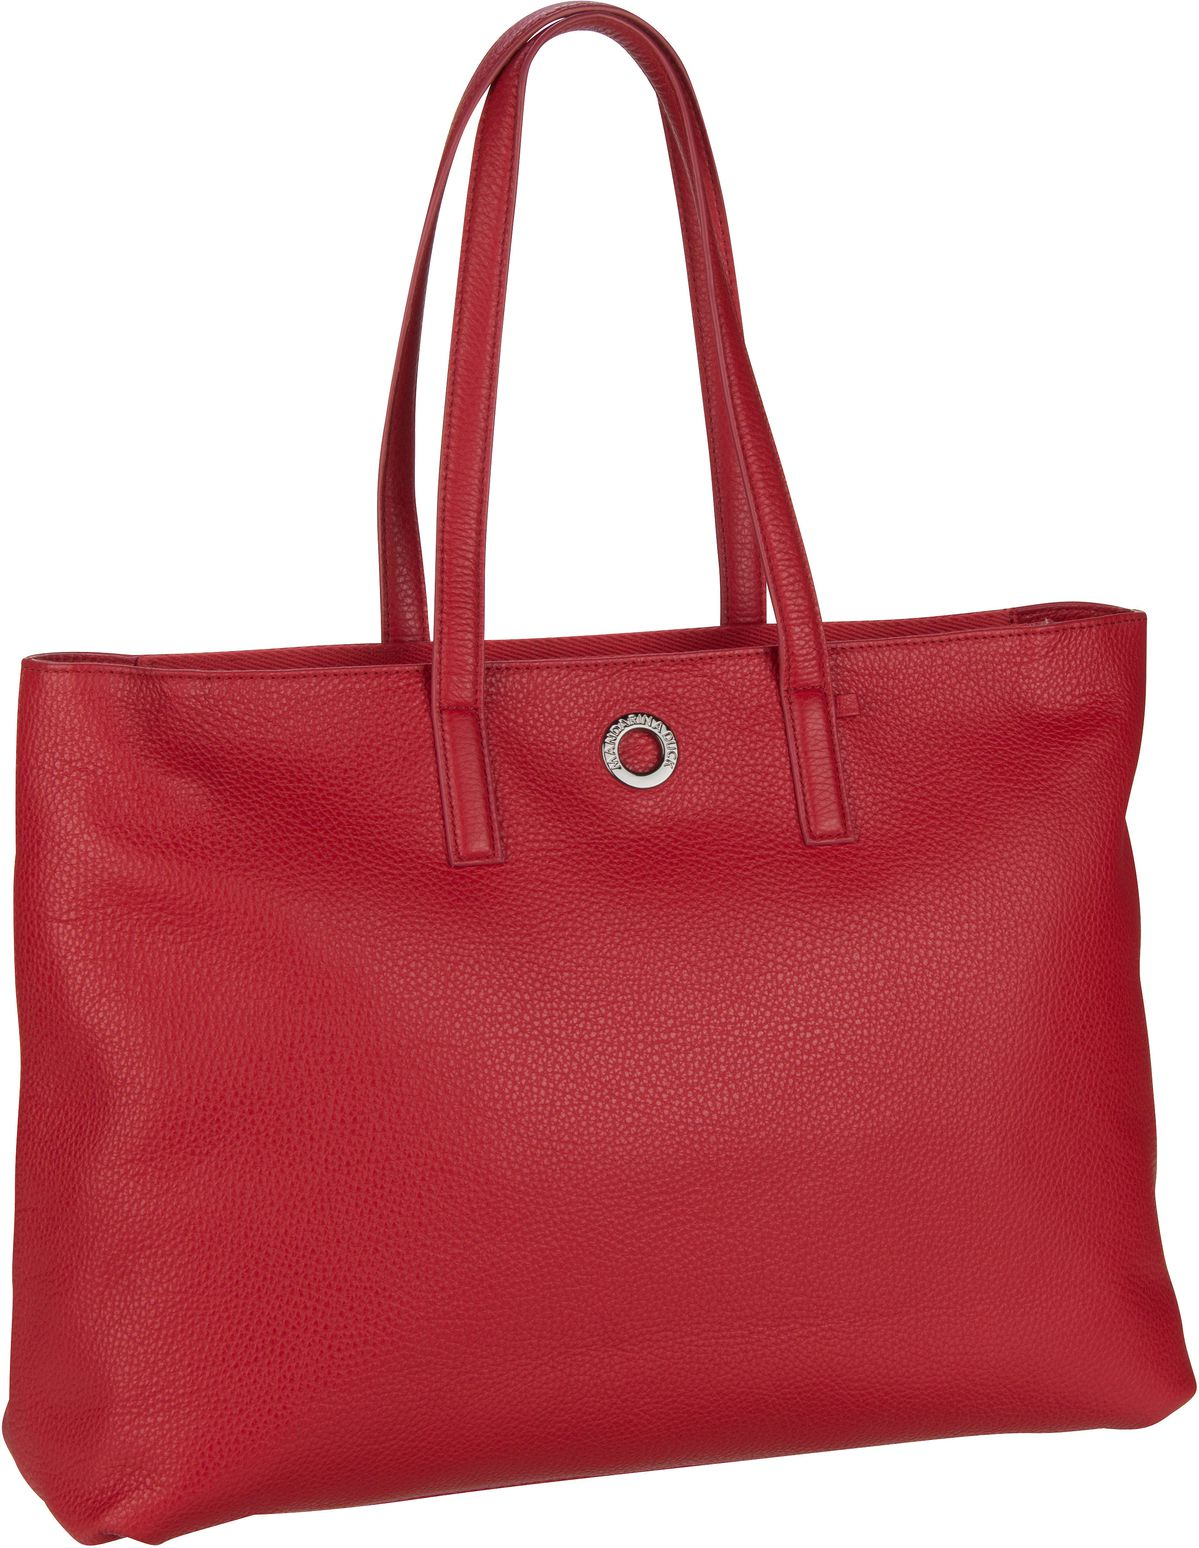 Handtasche Mellow Leather Shopping Bag FZT27 Flame Scarlet